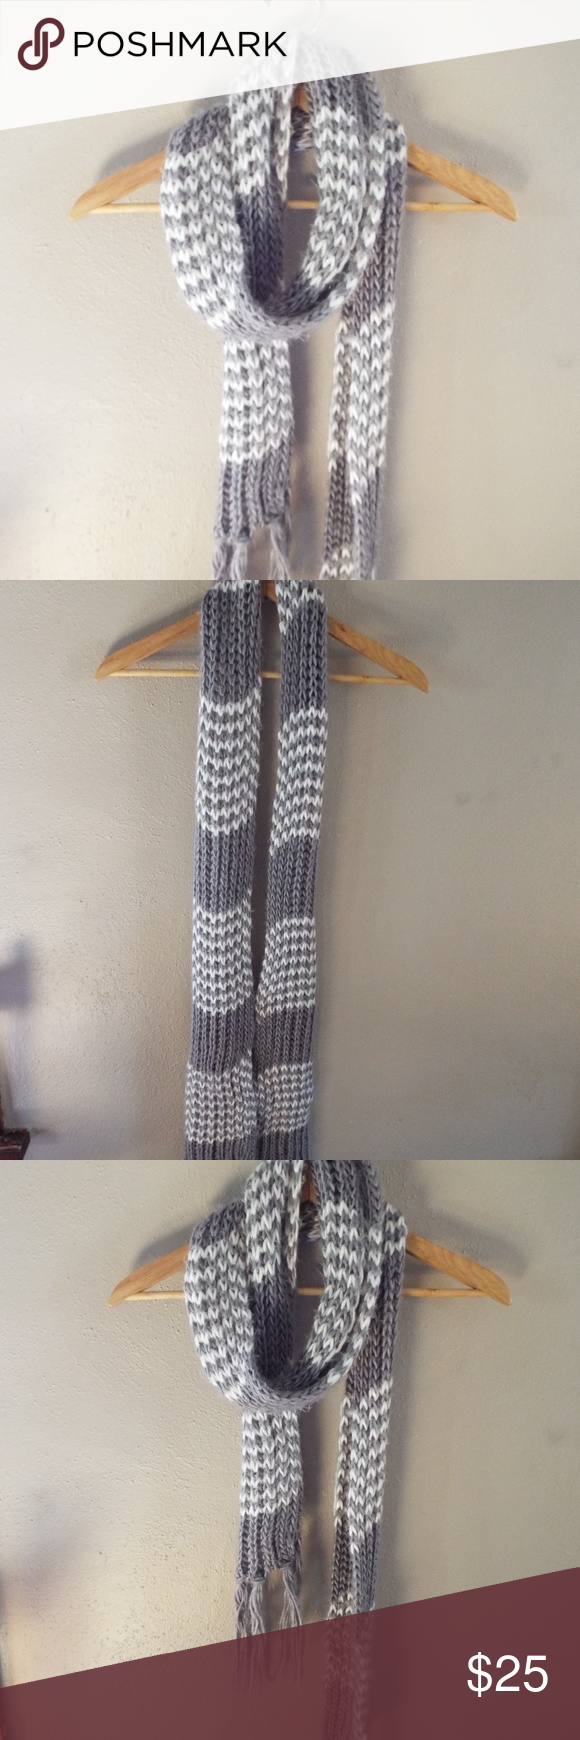 Photo of Long Handmade Knit Scarf This handmade knit scarf is gray and white and rather l…